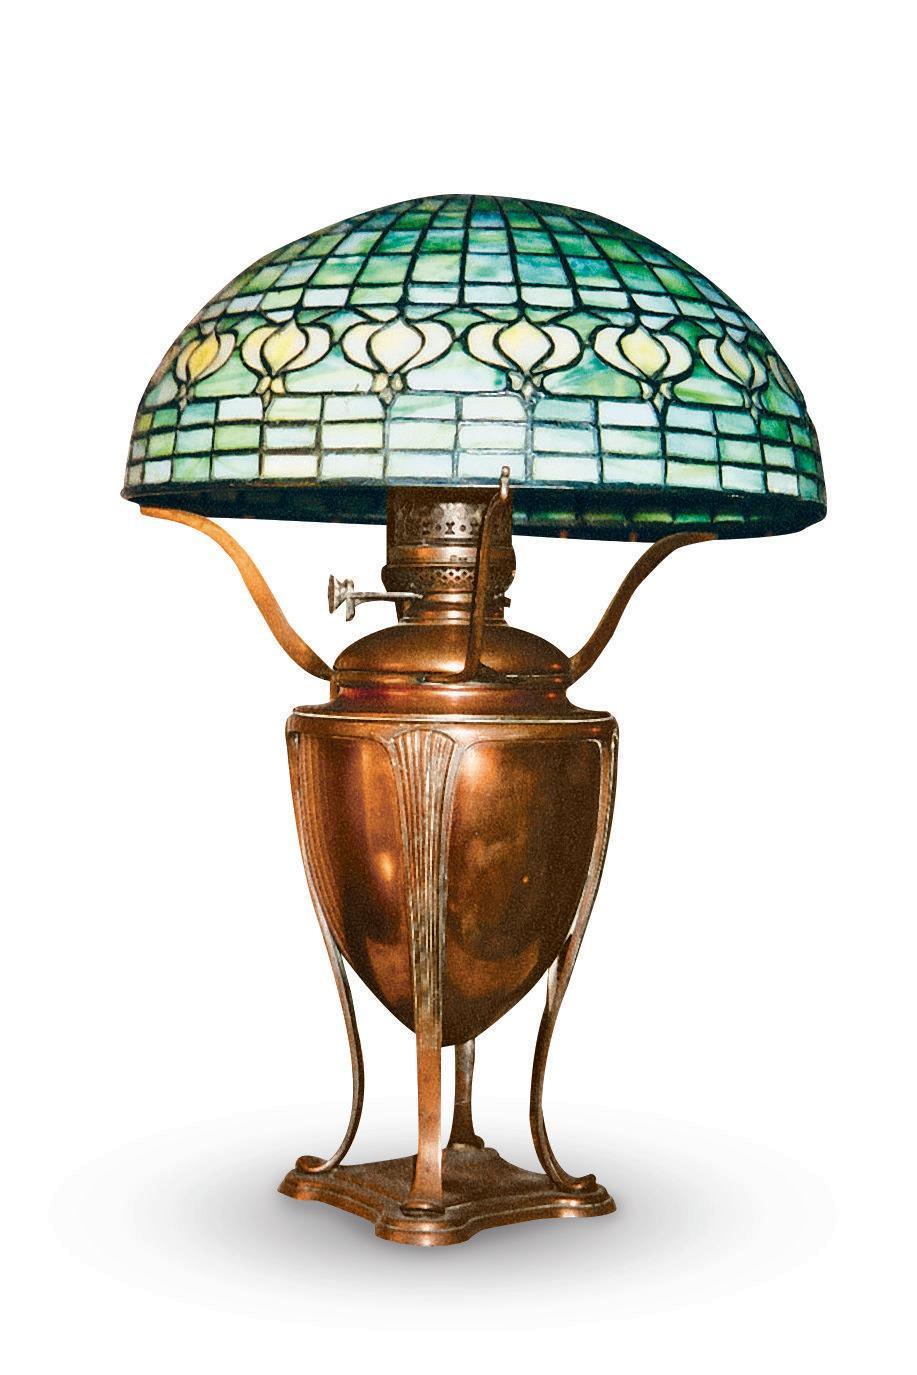 "<p><strong>What it was worth (2004):</strong> $12,000</p><p><strong>What it's worth now:</strong> $12,000</p><p>Compared to current <a href=""https://www.tiffanylamps.com/tiffany-table-lamps.html"" rel=""nofollow noopener"" target=""_blank"" data-ylk=""slk:Tiffany Table designs"" class=""link rapid-noclick-resp"">Tiffany Table designs</a>—which are sold for a few hundred dollars—<a href=""https://www.ebay.com/itm/Tiffany-Style-Table-Lamp-Double-Lit-Desk-Lamp-Stained-Glass-Home-Decor-Lighting/253135419951"" rel=""nofollow noopener"" target=""_blank"" data-ylk=""slk:this version"" class=""link rapid-noclick-resp"">this version</a> is quite a bit pricier.</p>"